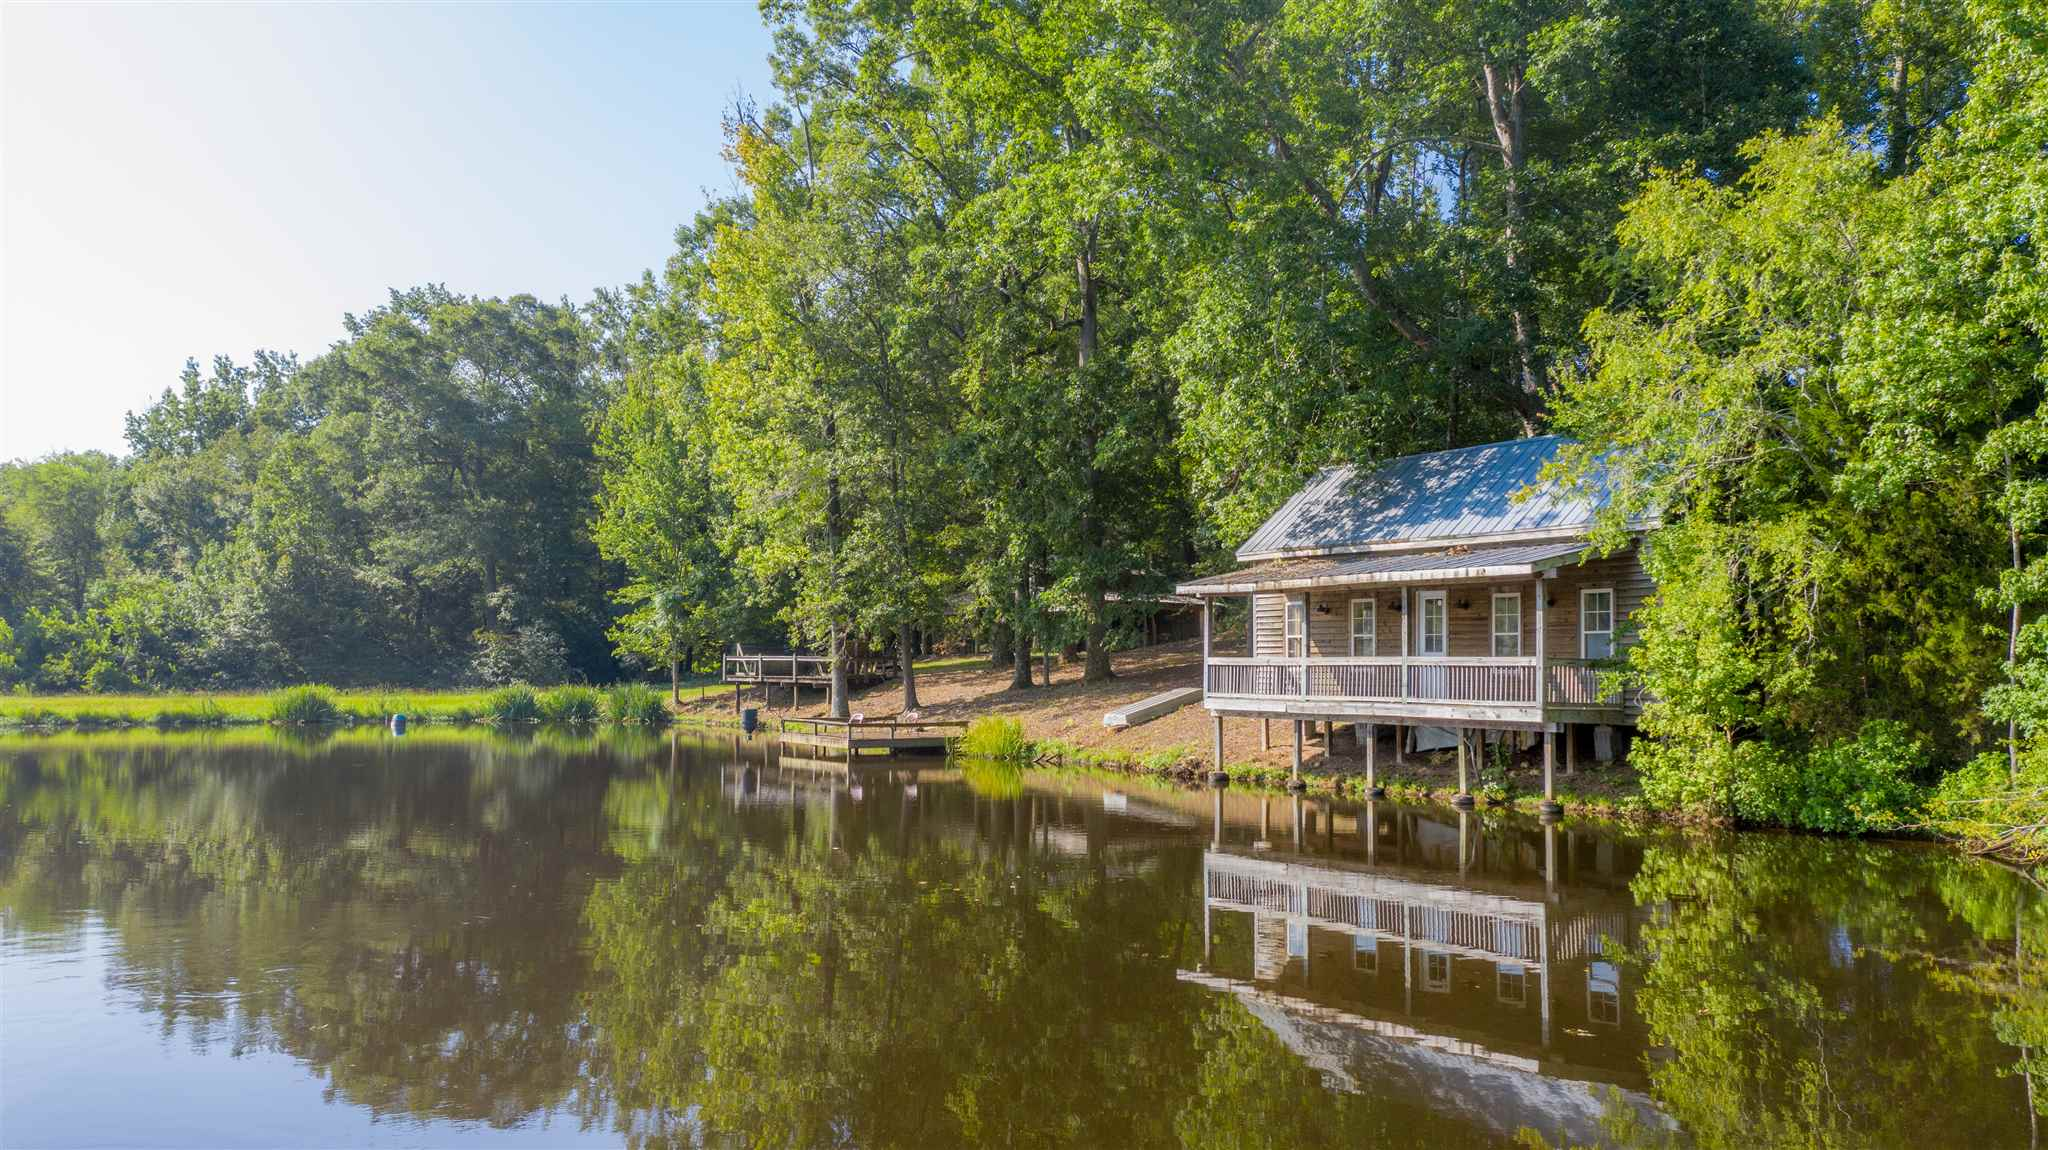 0 SPARTA HIGHWAY AS, one of homes for sale in Lake Oconee